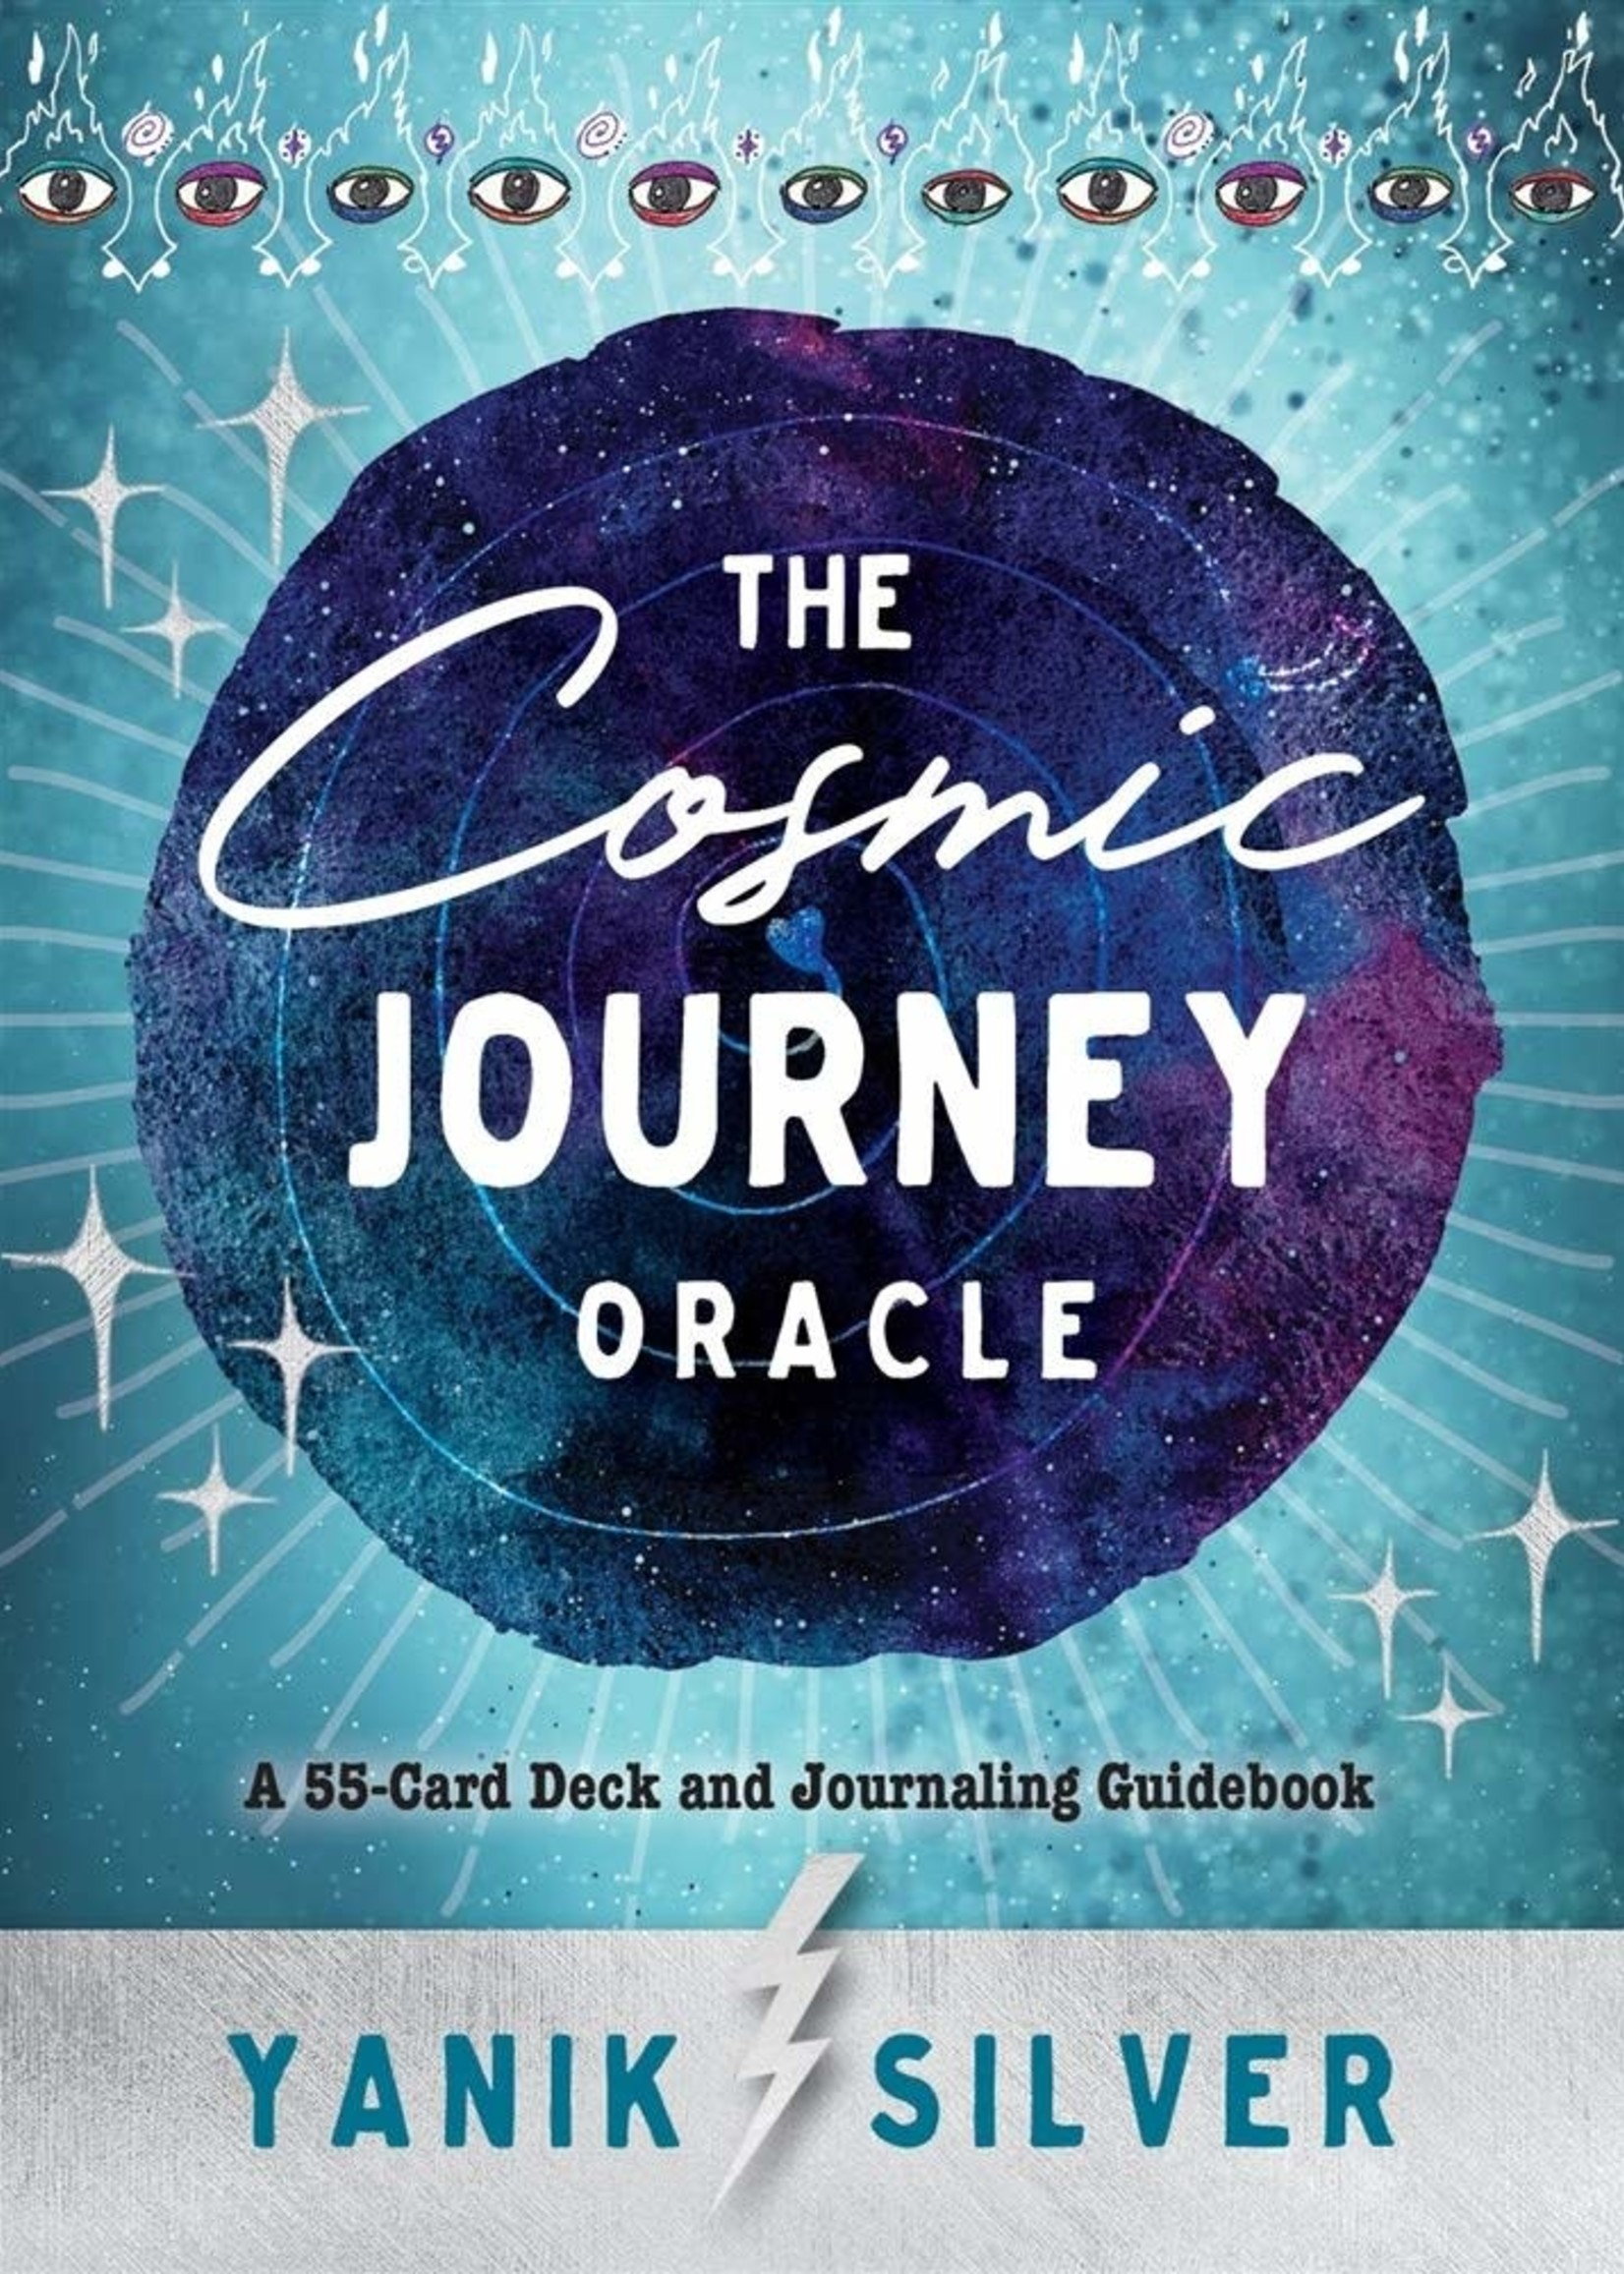 Deck The Cosmic Journey Oracle